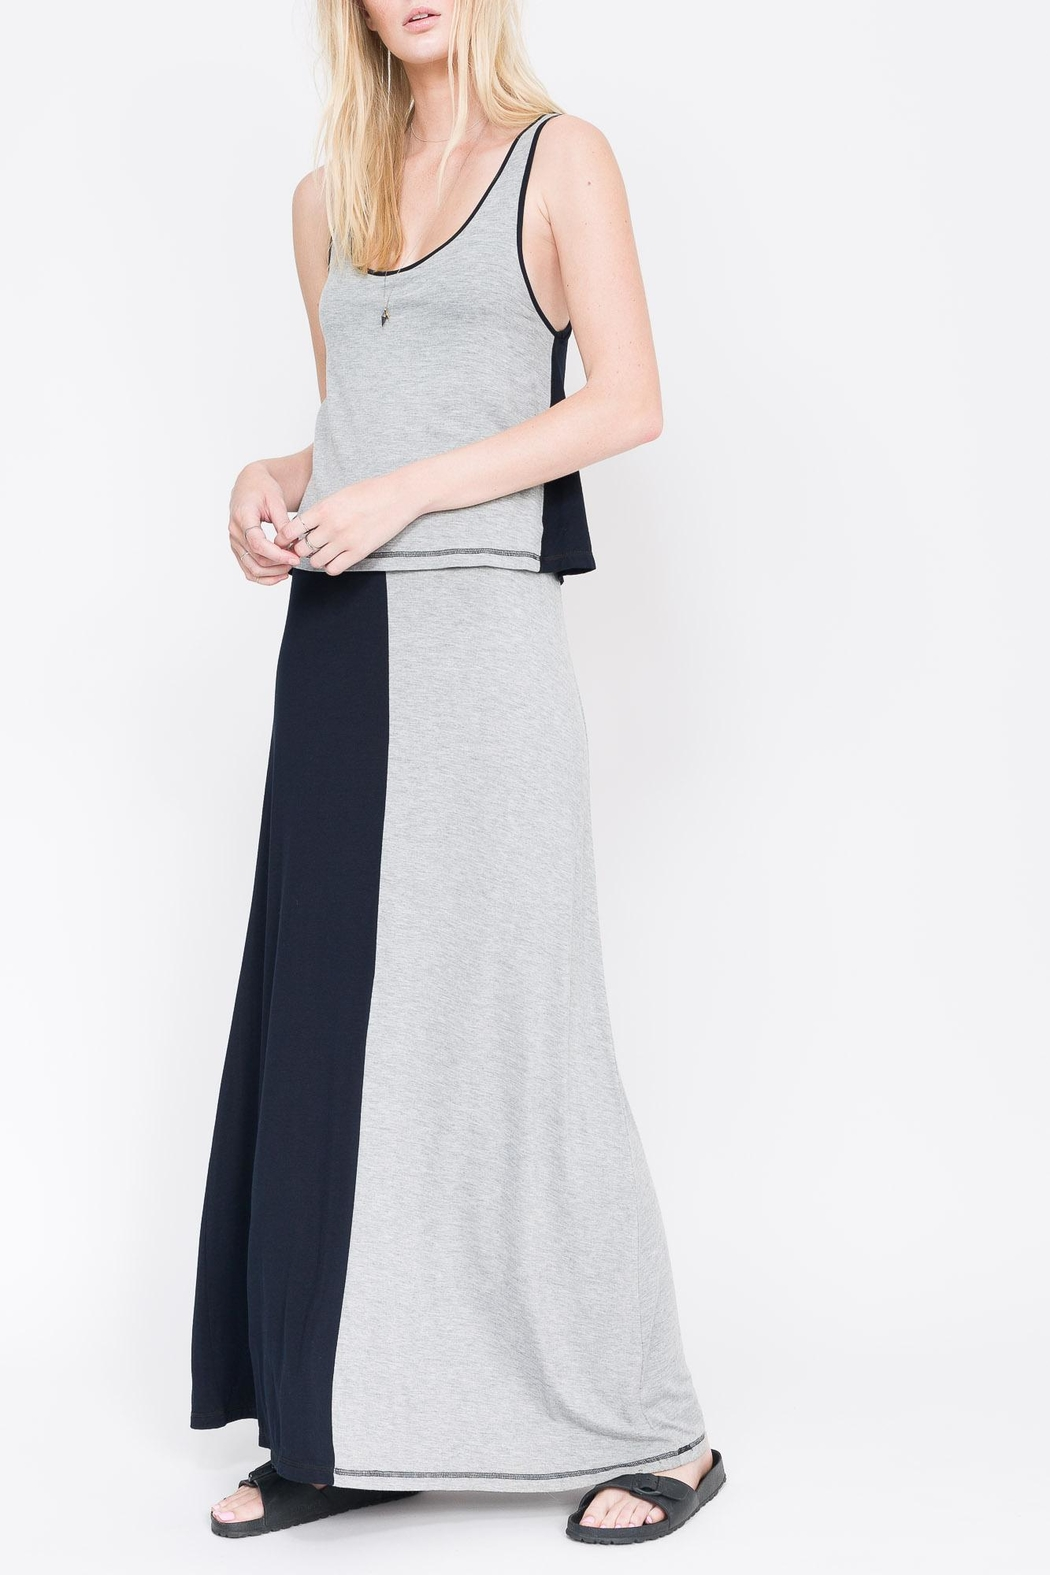 QUINN Emma Maxi Dress - Front Cropped Image